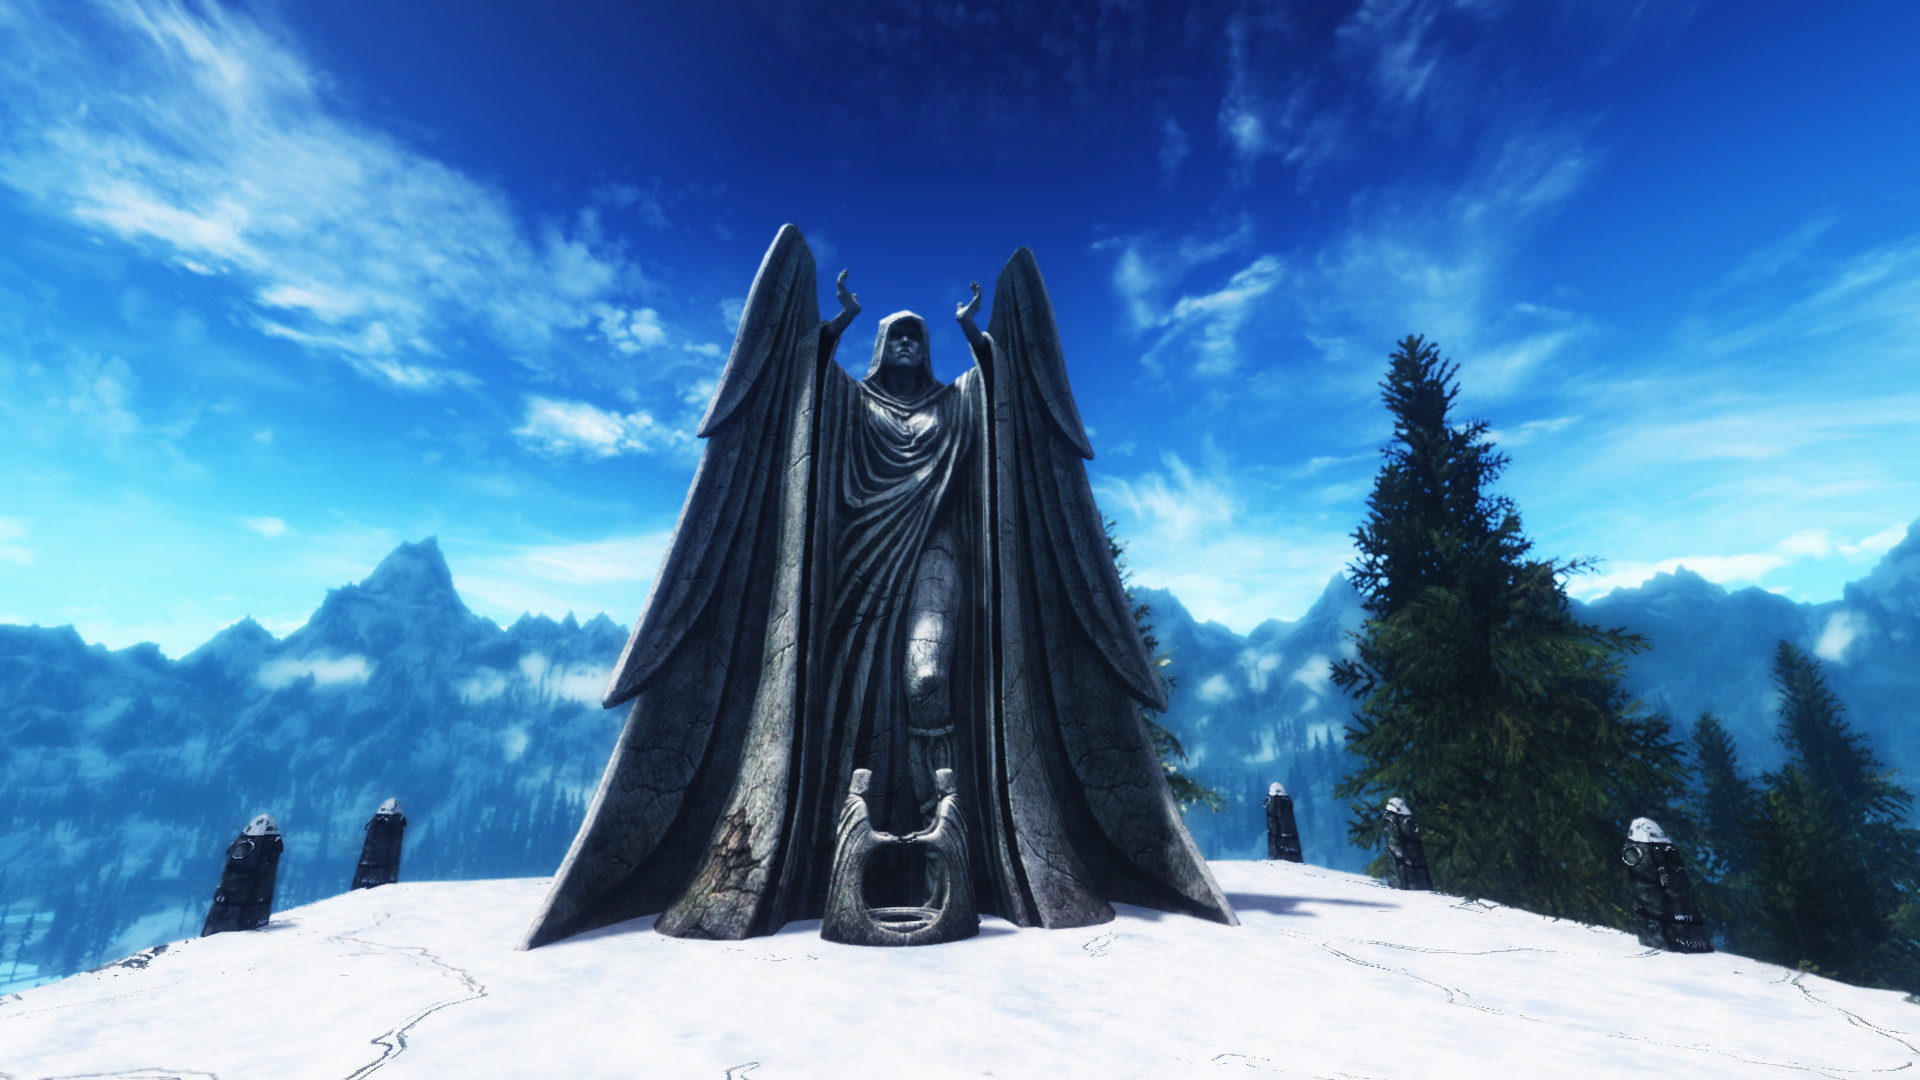 skyrim wallpapers 1920x1080, elder scrolls skyrim wallpaper